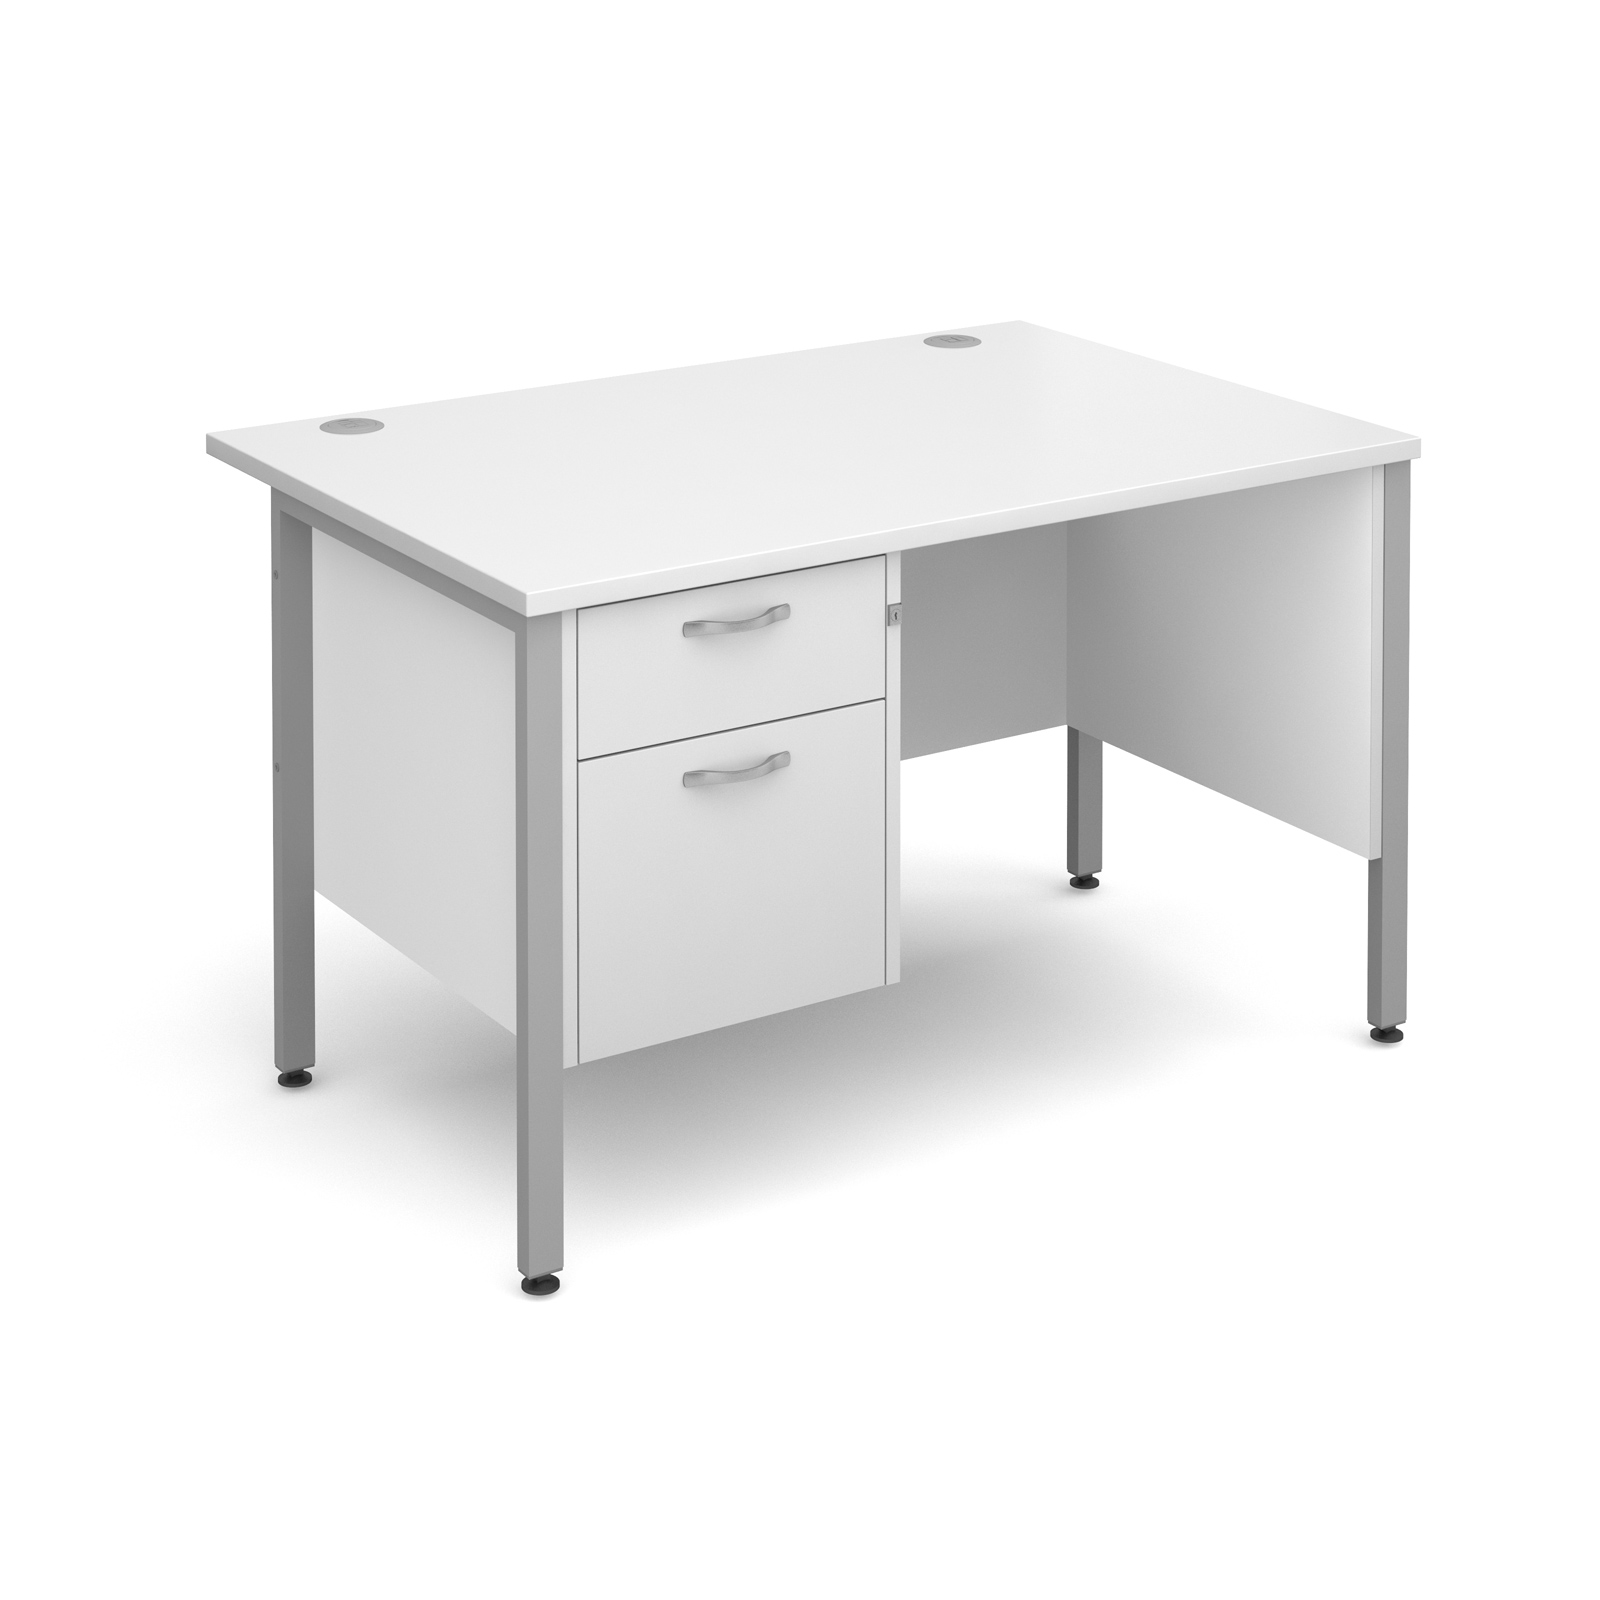 Active M25 SHL Straight Desk | Single Pedestal